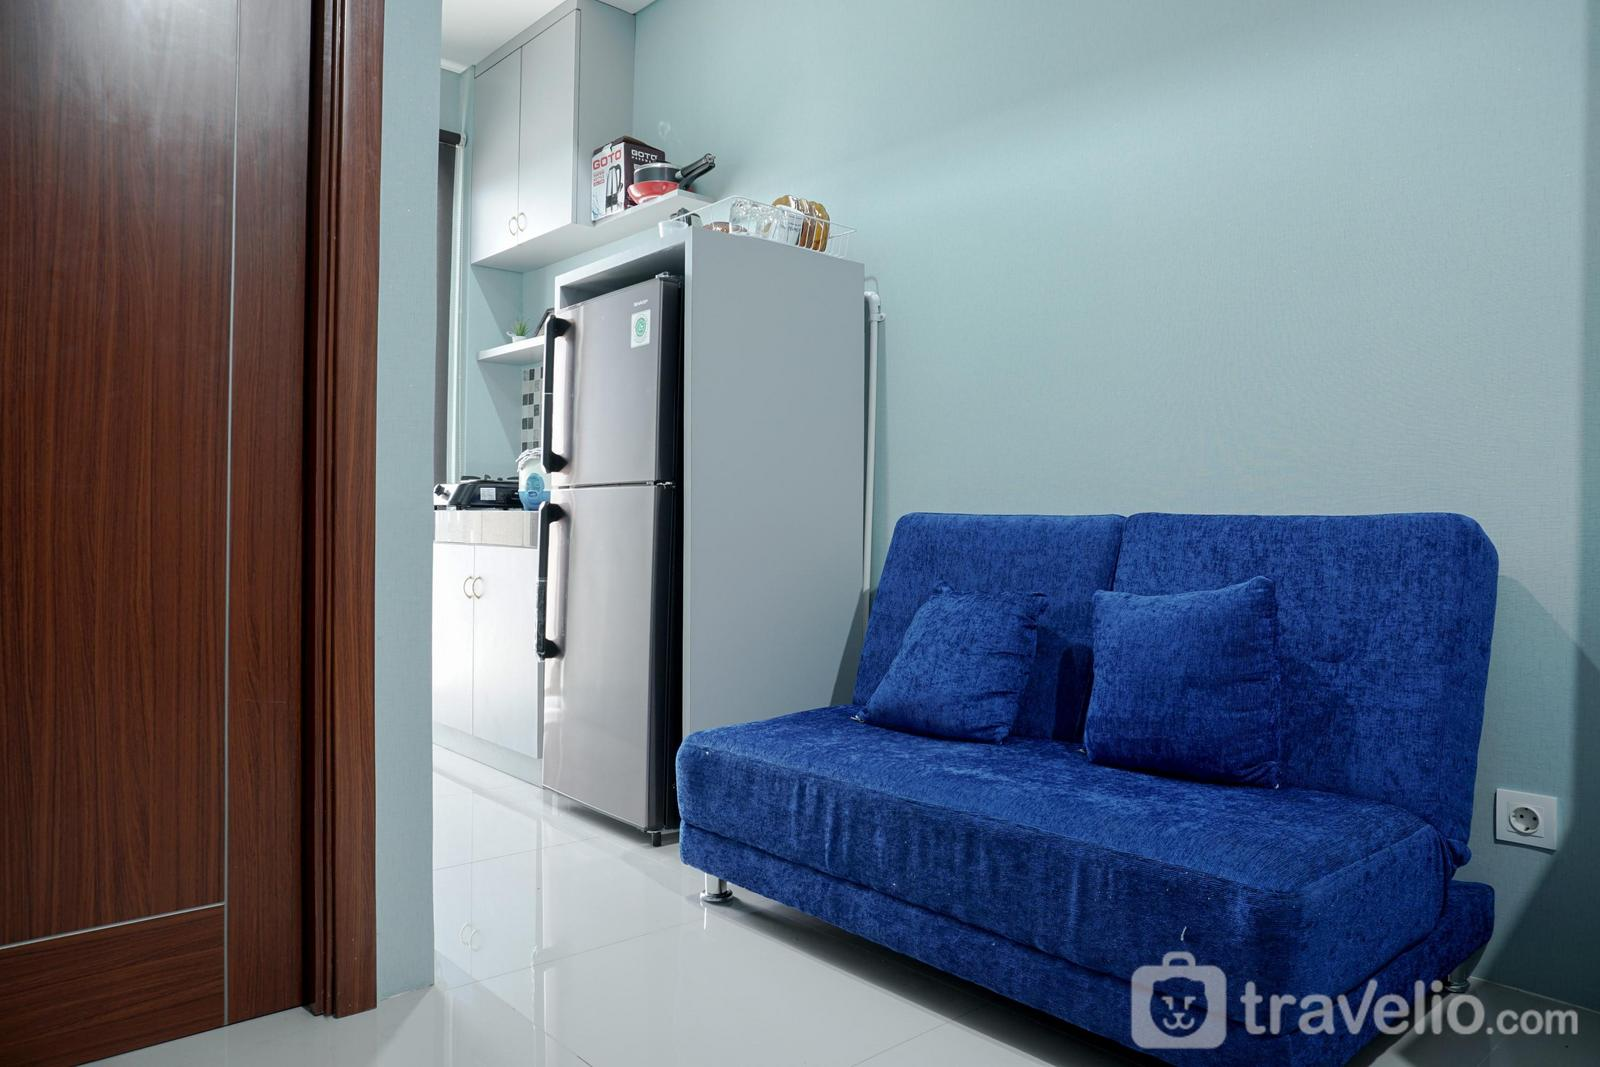 Vittoria Residence - Fully Furnished 1BR Apartment at Vittoria Residence By Travelio